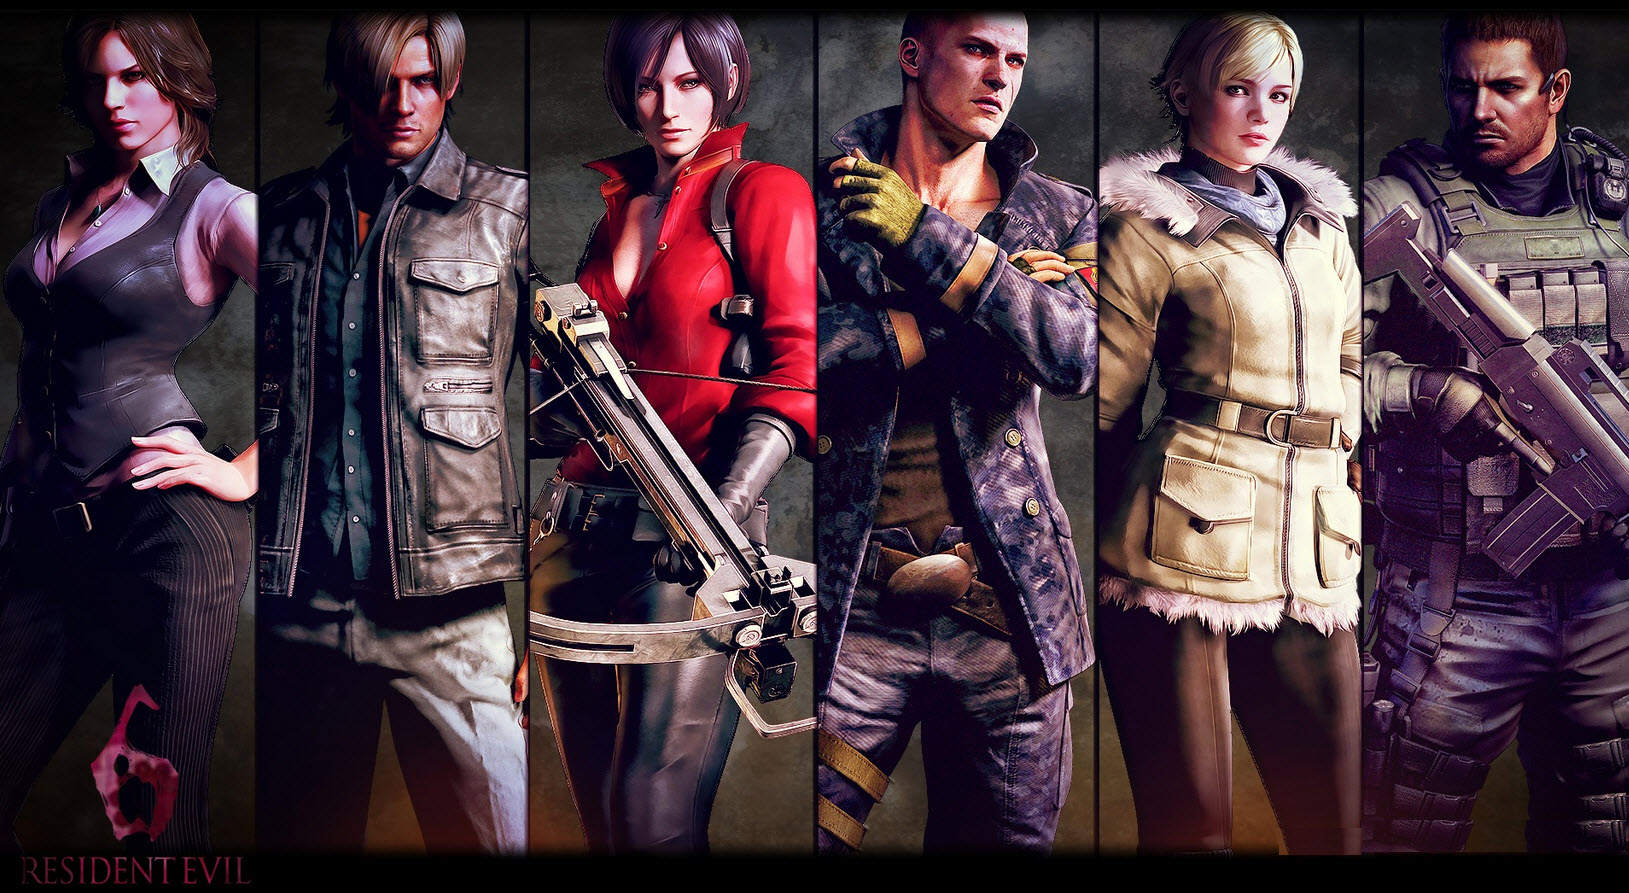 Resident Evil 6: There's Nothing Wrong With Resident Evil